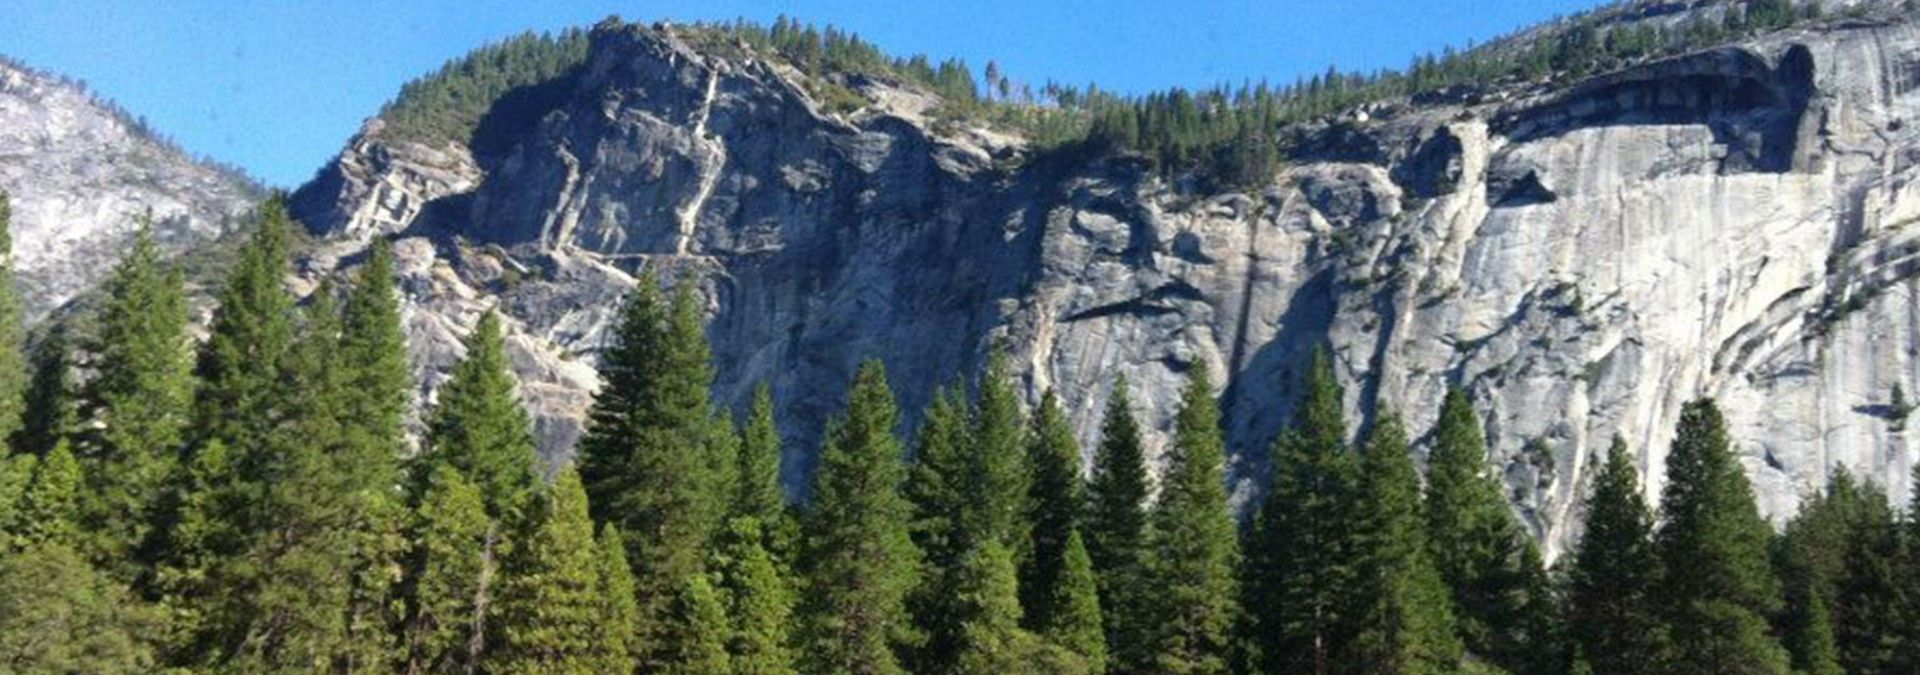 Granite_Cliffs_Yosemite_National_Park.jpg